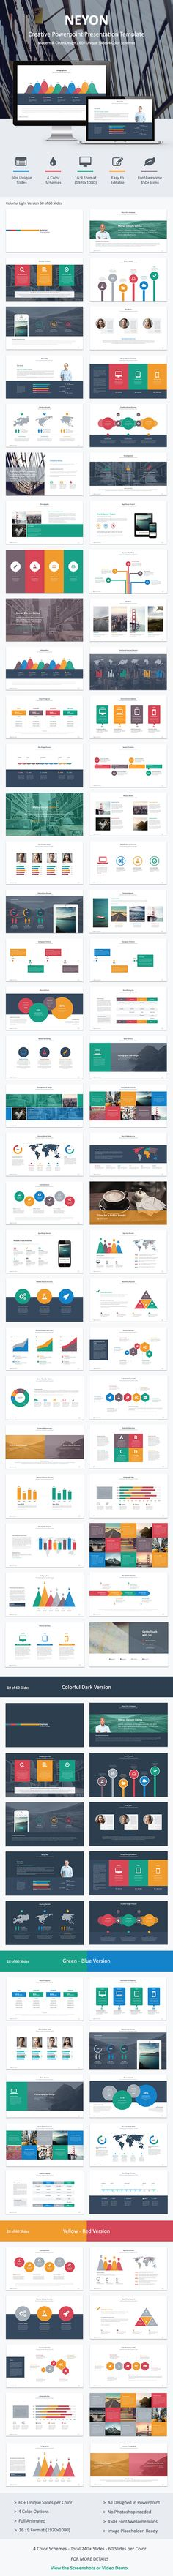 Neyon - Powerpoint Template (Powerpoint Templates)